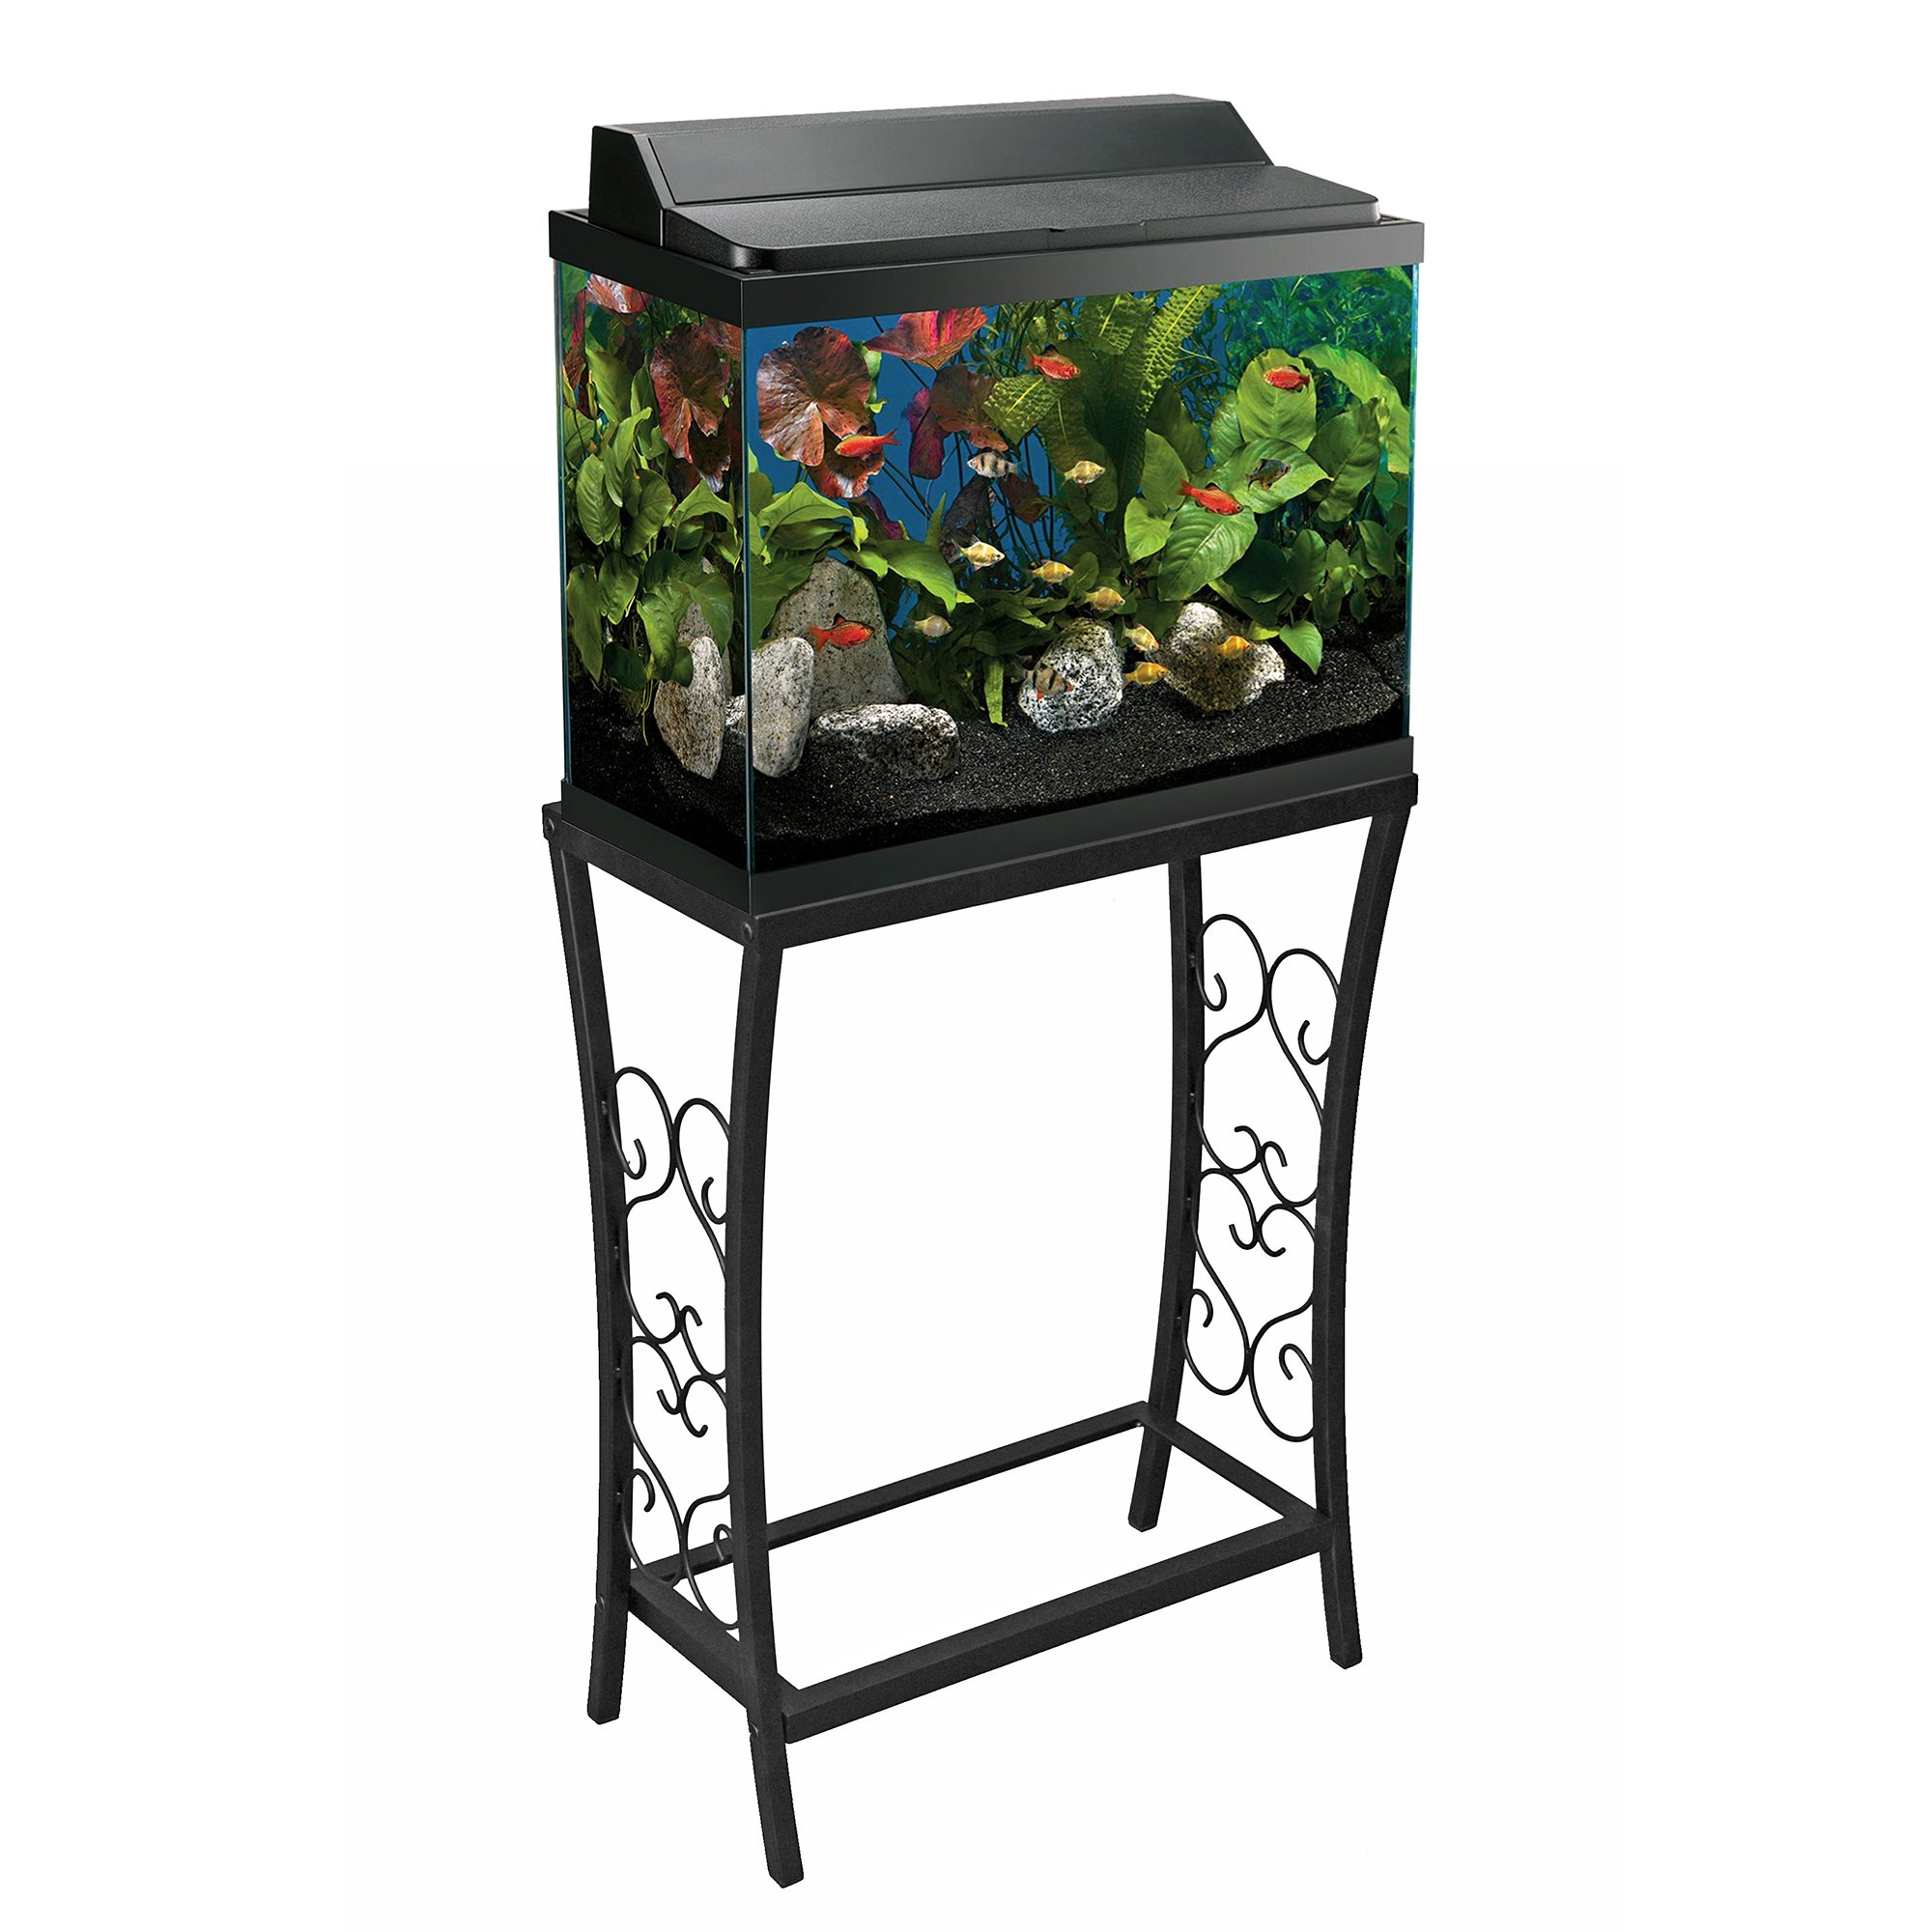 Aquatic Fundamentals Black Scroll Aquarium Stand 10 Gallons